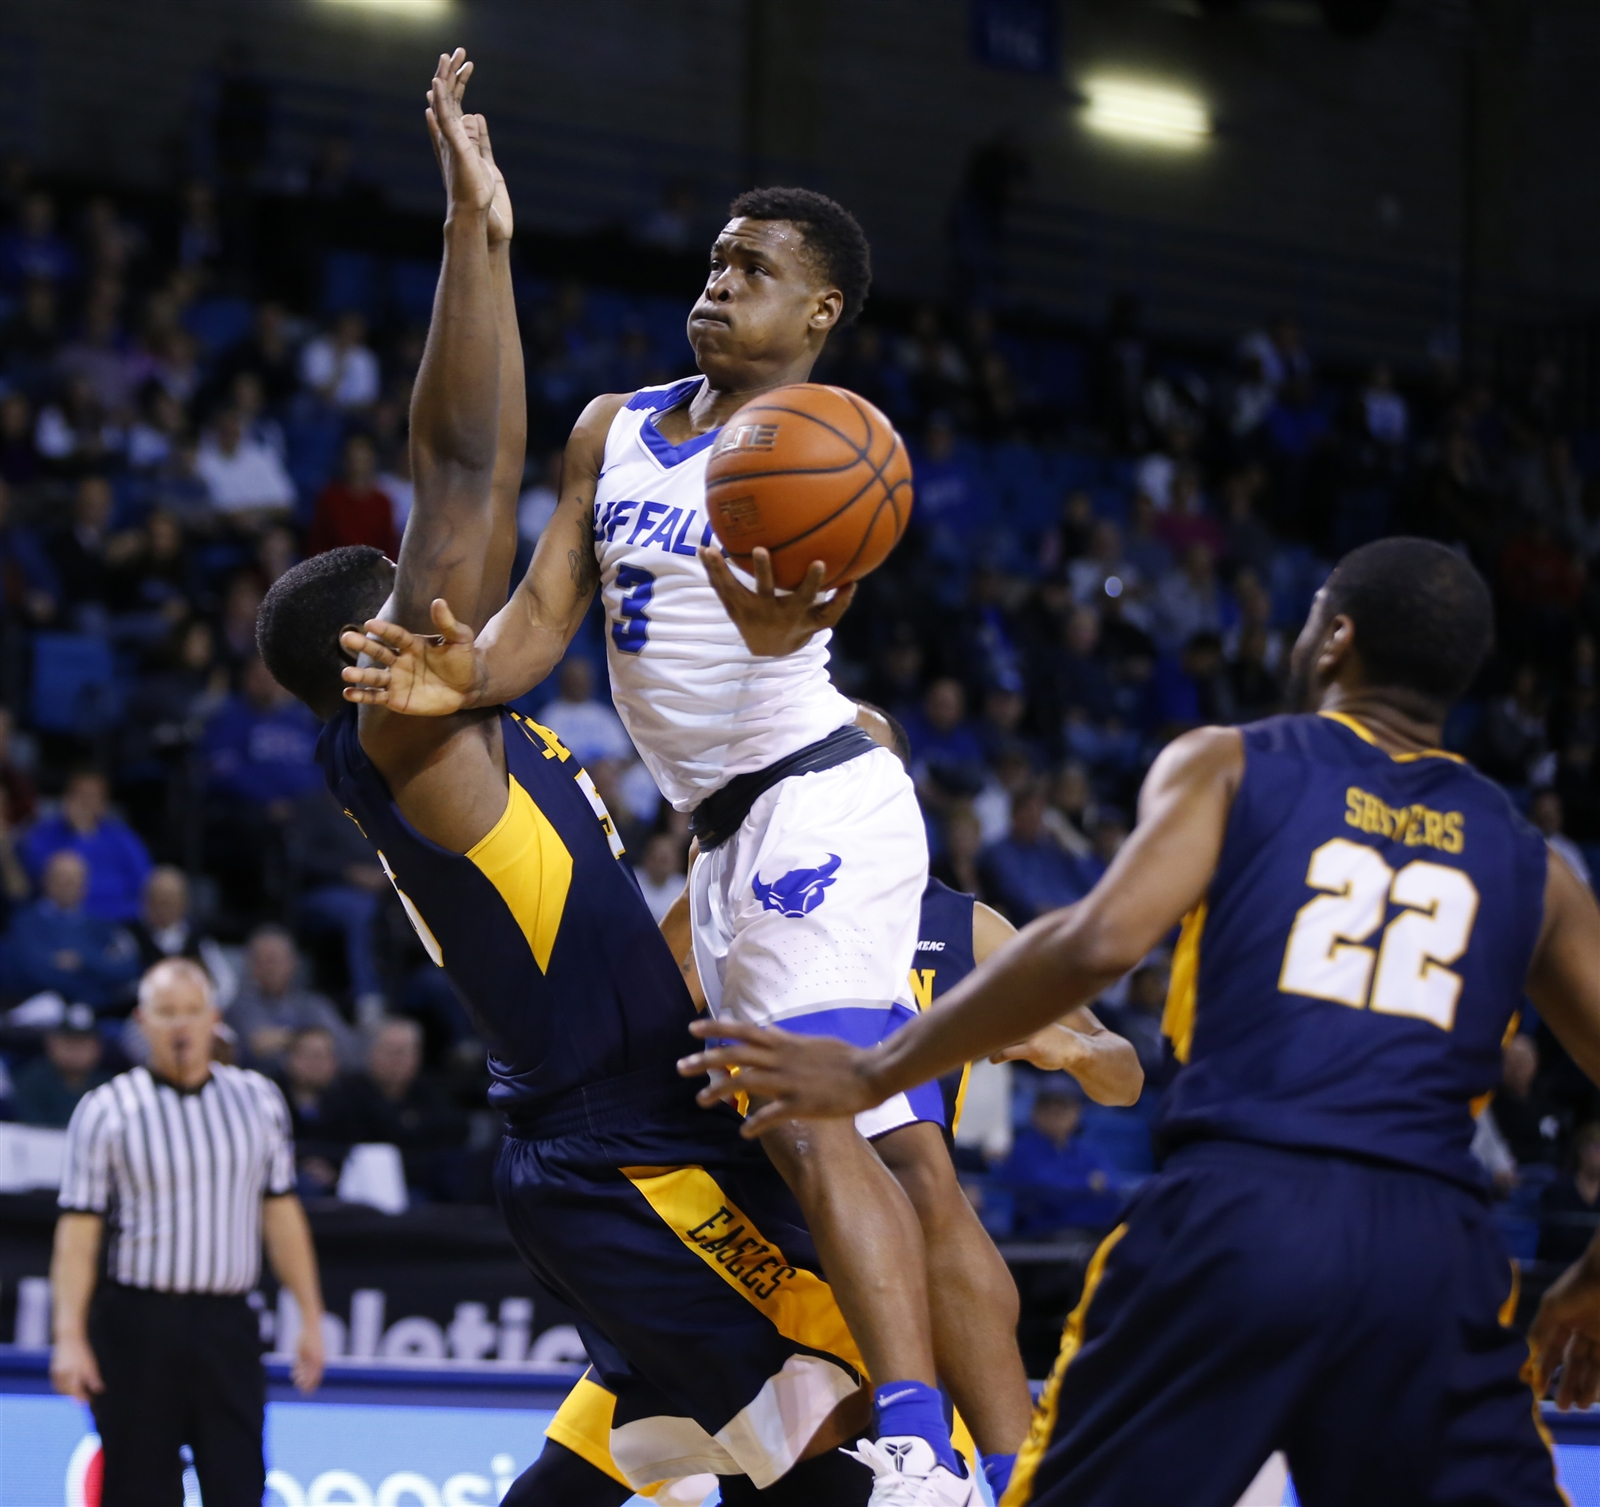 University at Buffalo's Davonta Jordan drives to the basket against Coppin State during first half action at Alumni Arena on Saturday, Dec. 10, 2016.